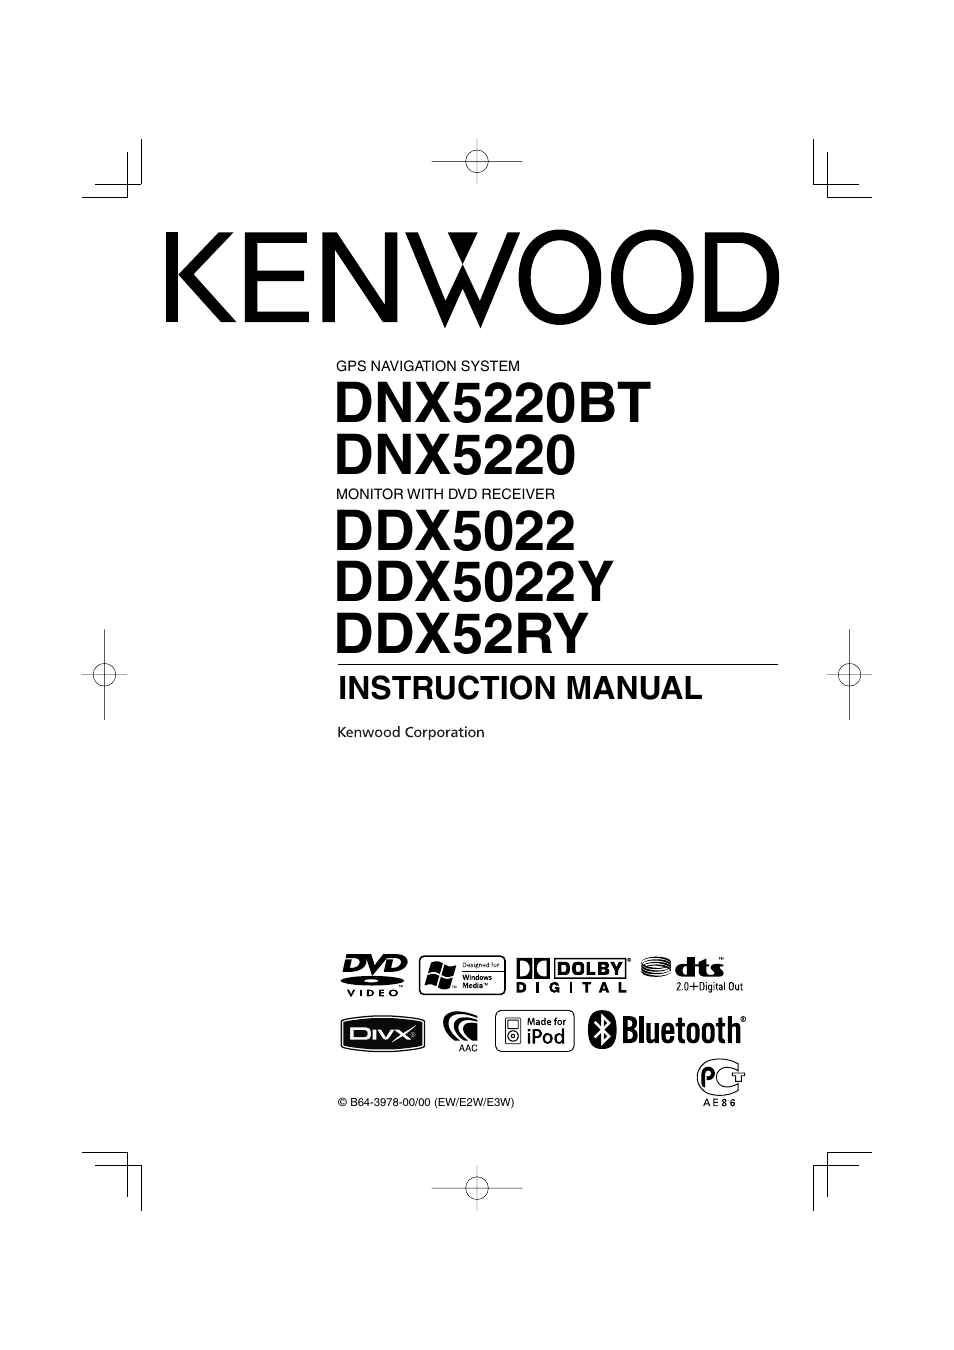 Kenwood Ddx 5022 Manual One Word Quickstart Guide Book Ddx419 Car Stereo Wiring Diagrams Ddx5022y User 96 Pages Also For Ddx5022 Dnx5220 Rh Manualsdir Com Specifications Models